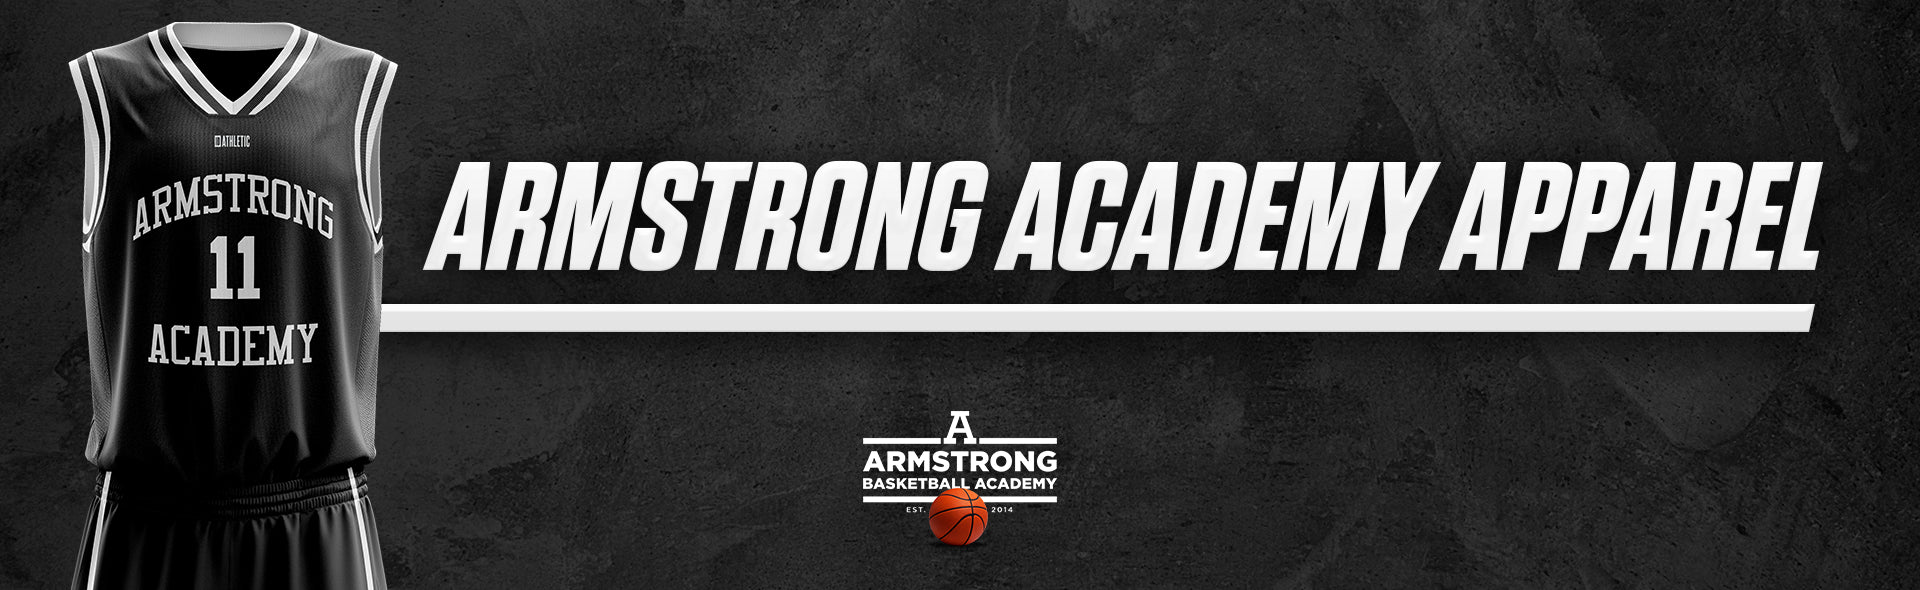 Armstrong Academy Apparel